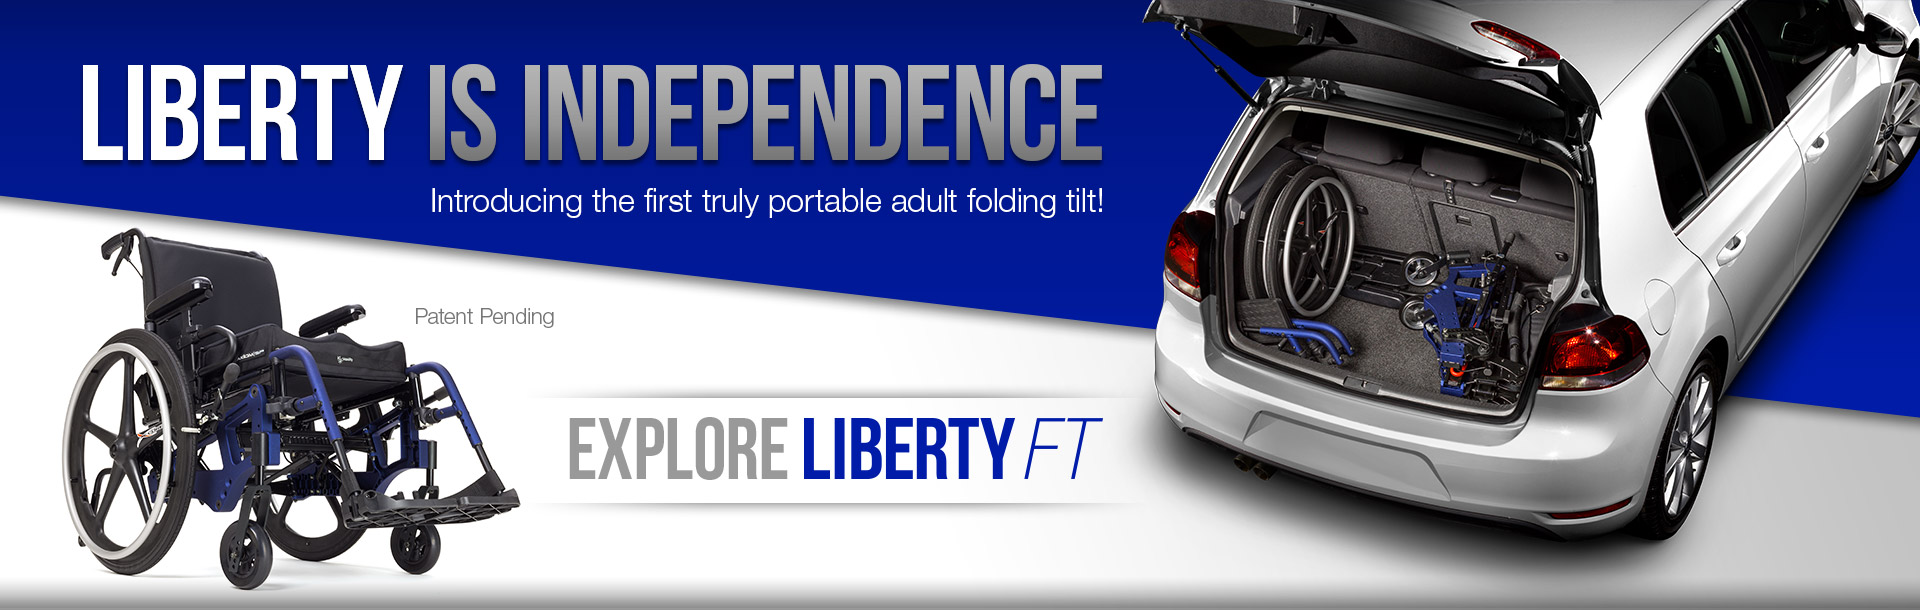 Explore Liberty FT!